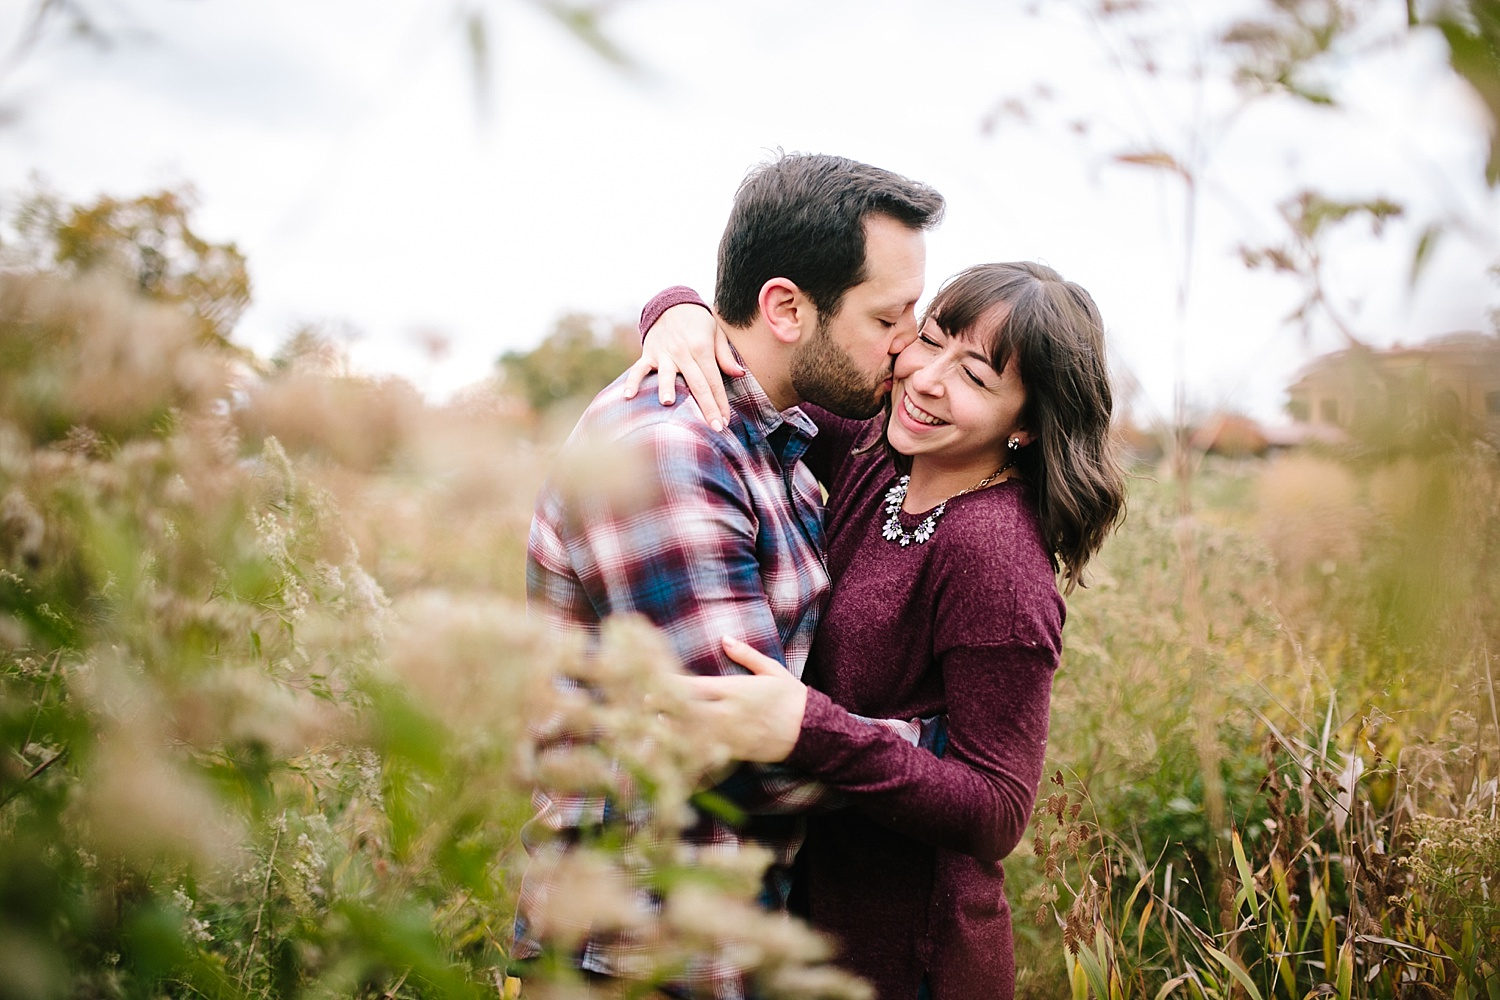 michelleanddaniel_eaglerockreservation_engagement_image003.jpg